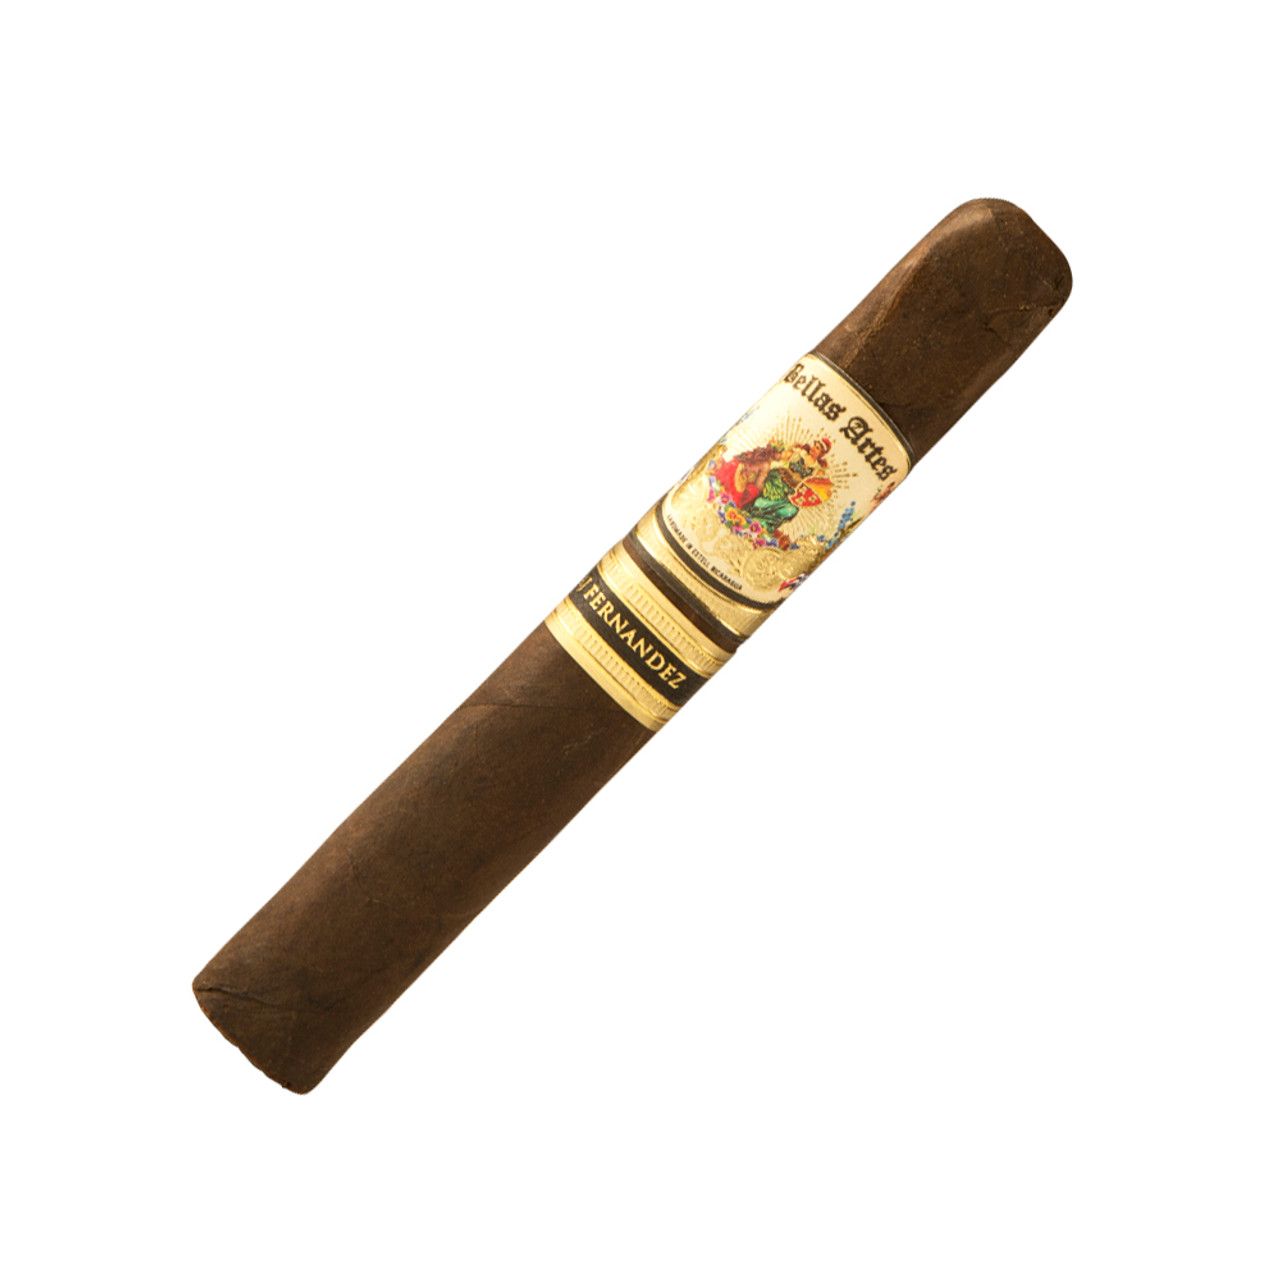 Bellas Artes by AJ Fernandez Maduro Brazil Robusto Cigars - 5.5 x 52 (Box of 20)